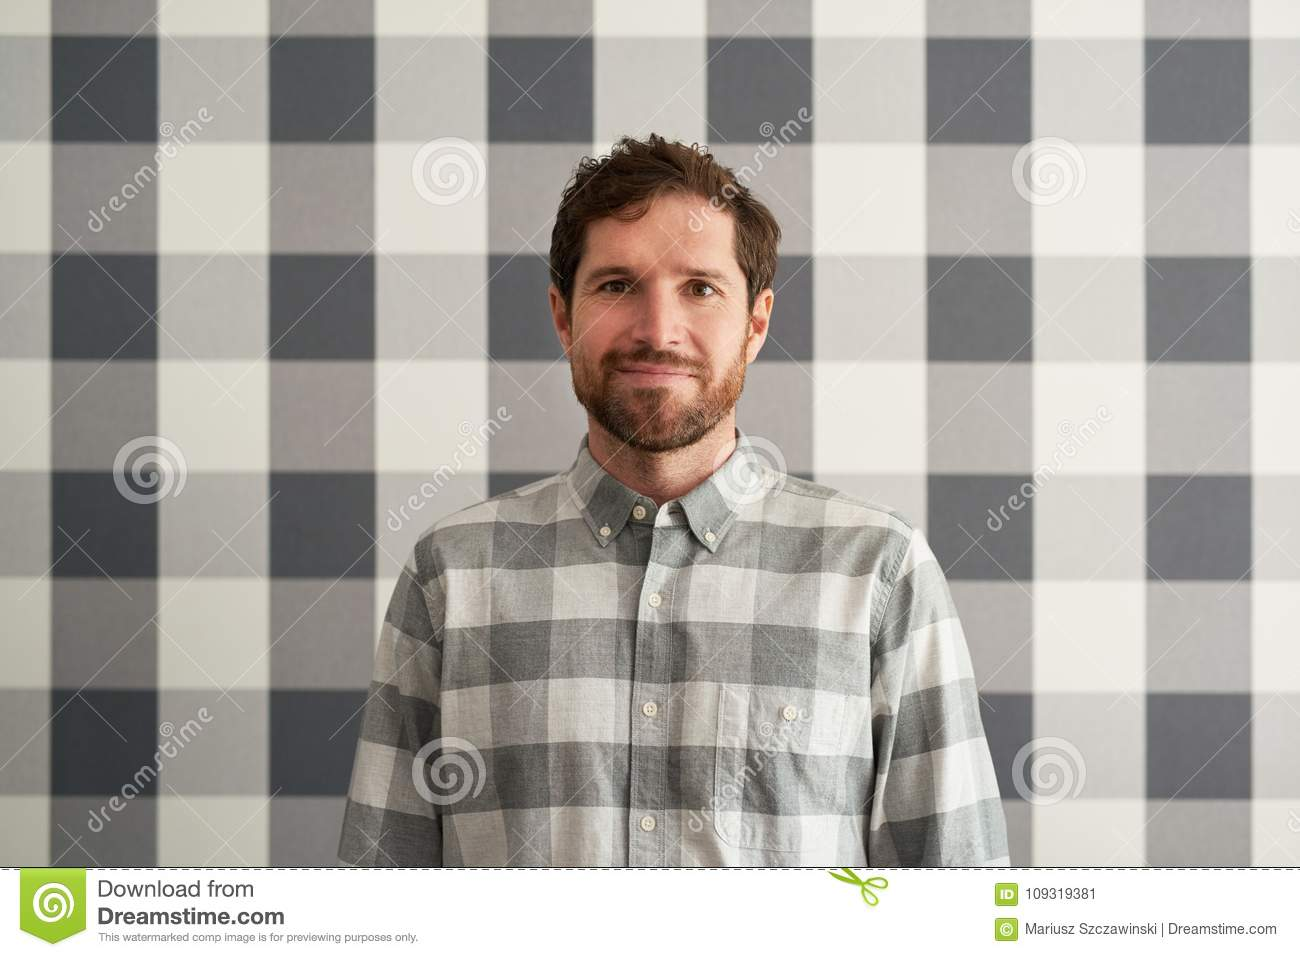 Smiling young man wearing a checkered shirt matching his wallpaper